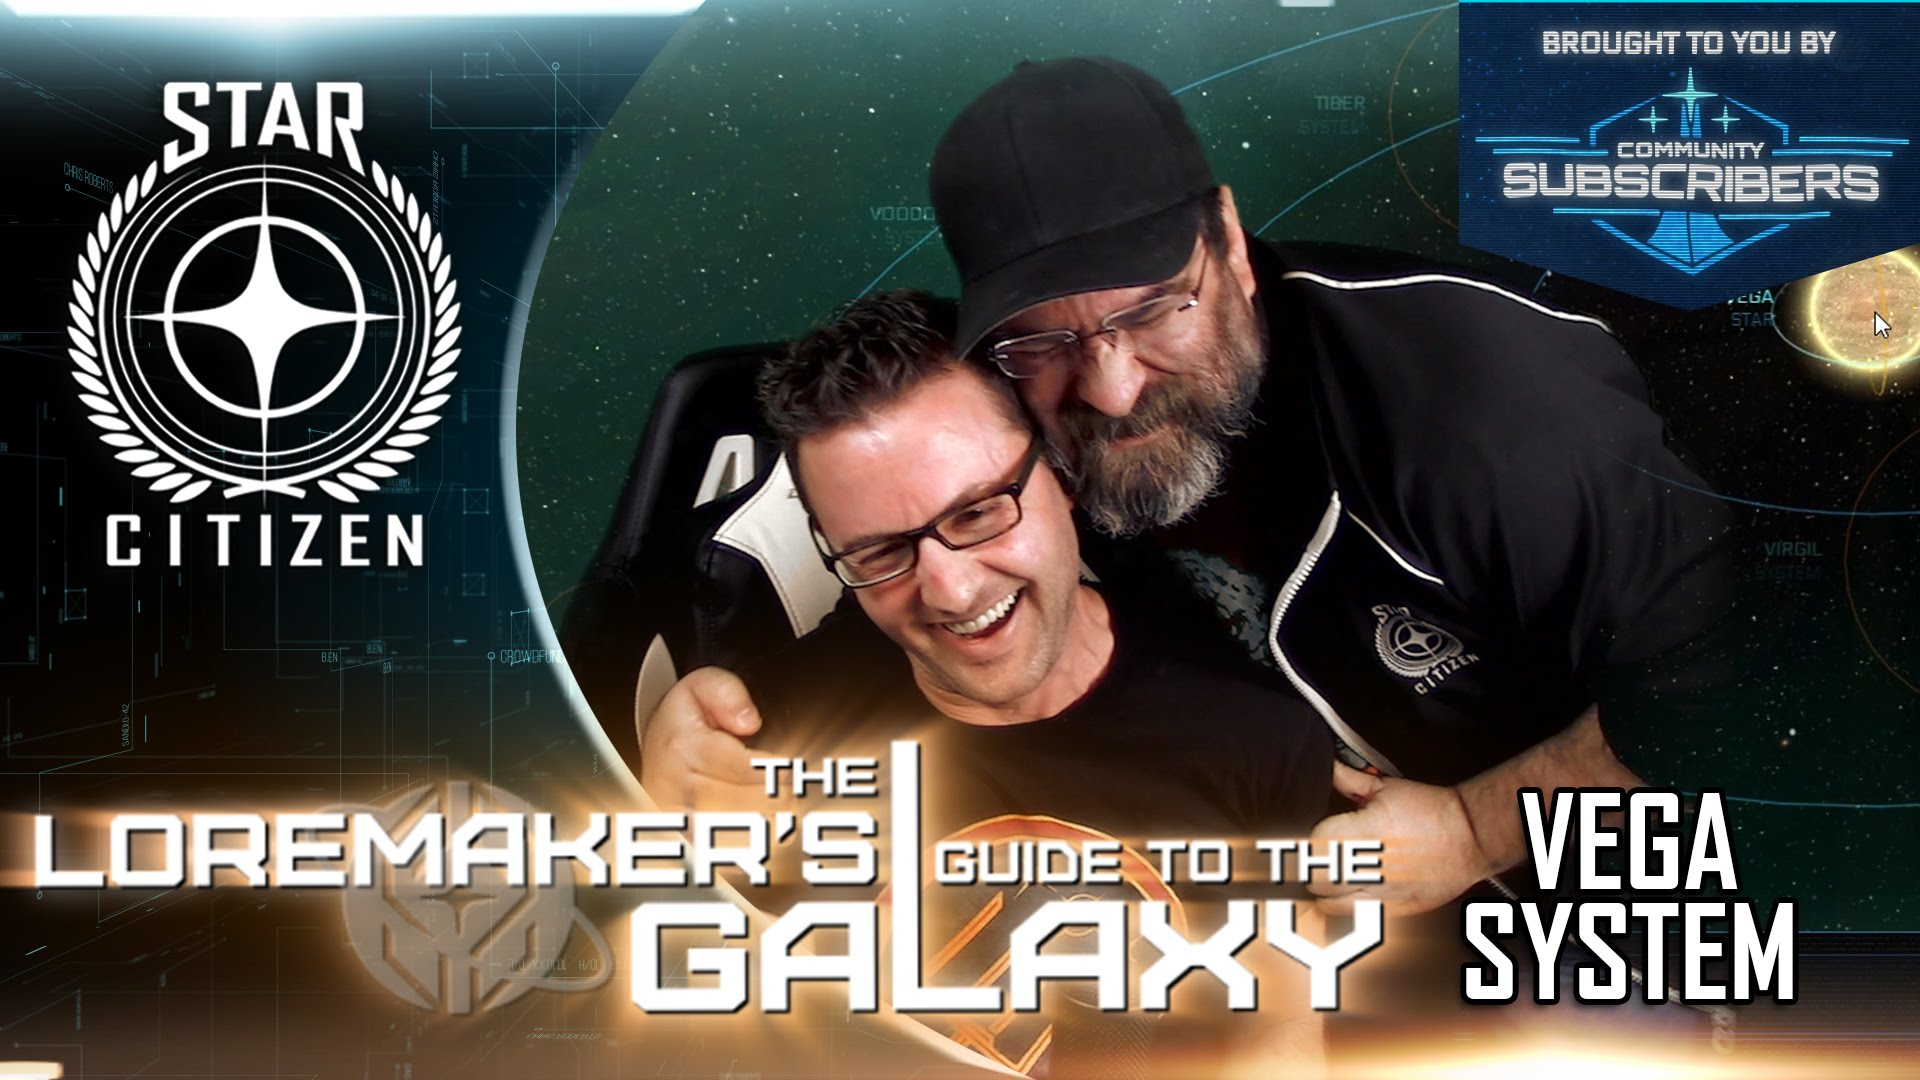 Star Citizen: Loremaker's Guide to the Galaxy - Vega System